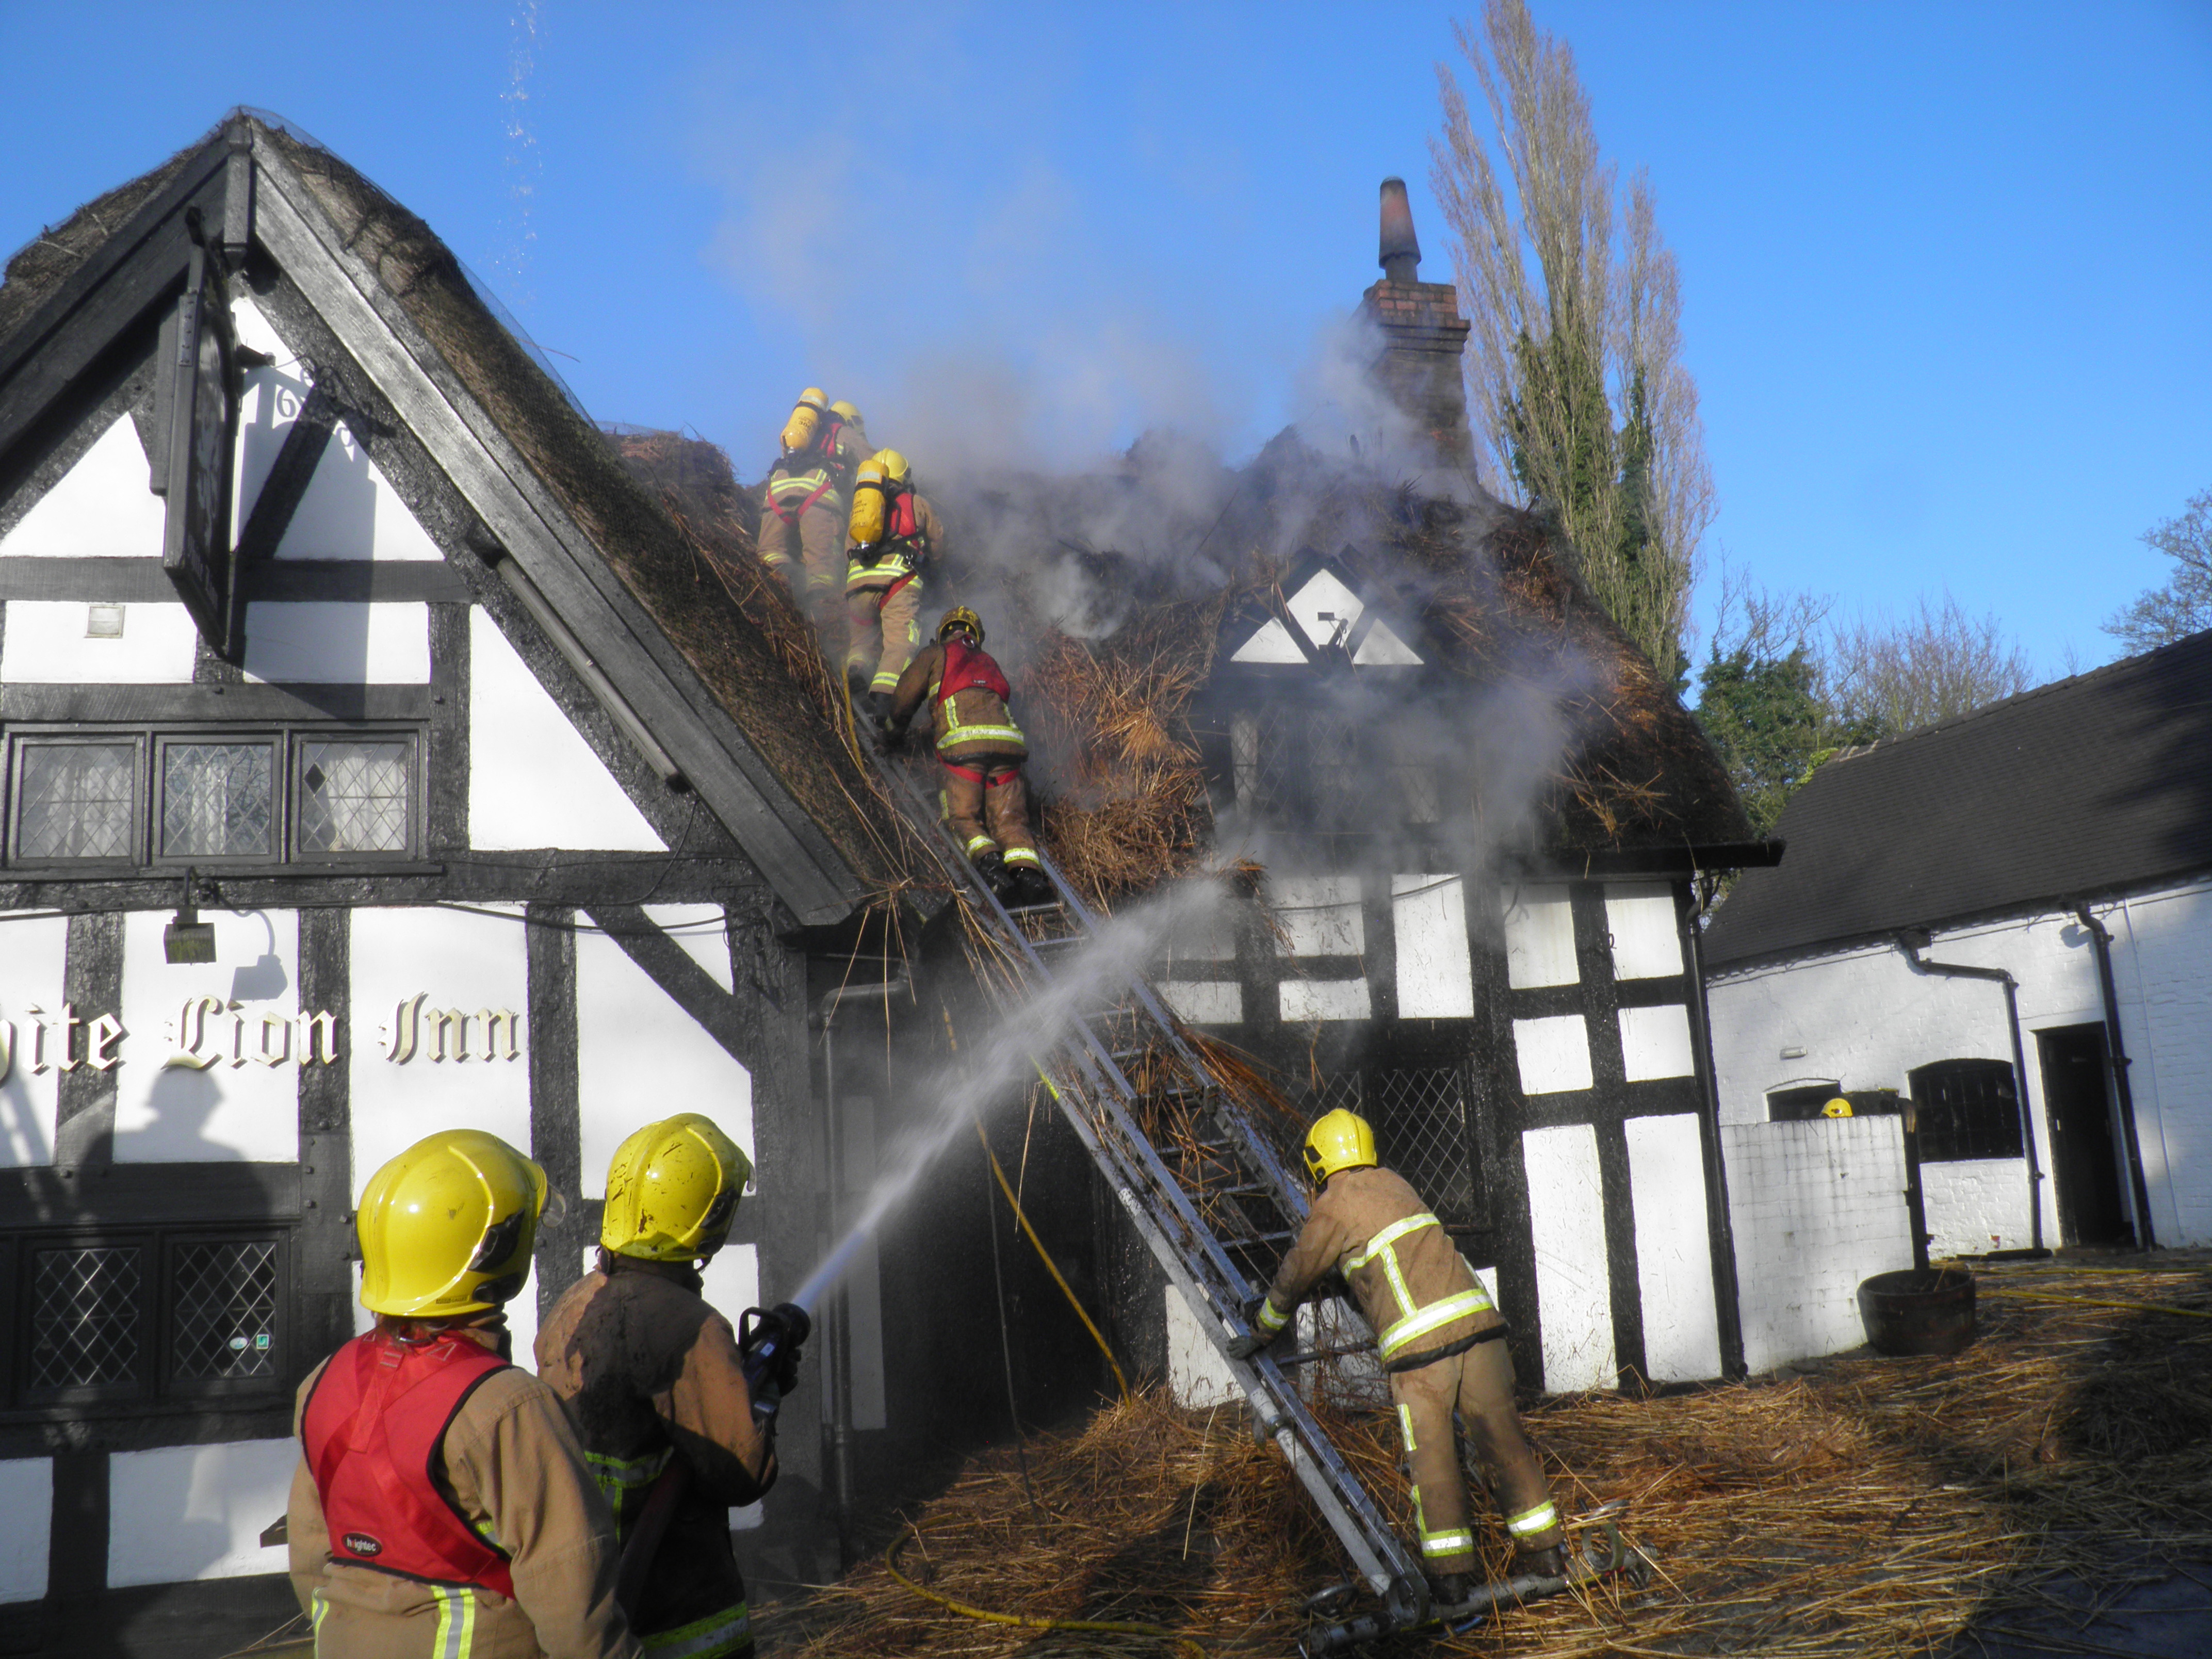 Crews Tackle Thatch Roof Fire At Barthomley Pub